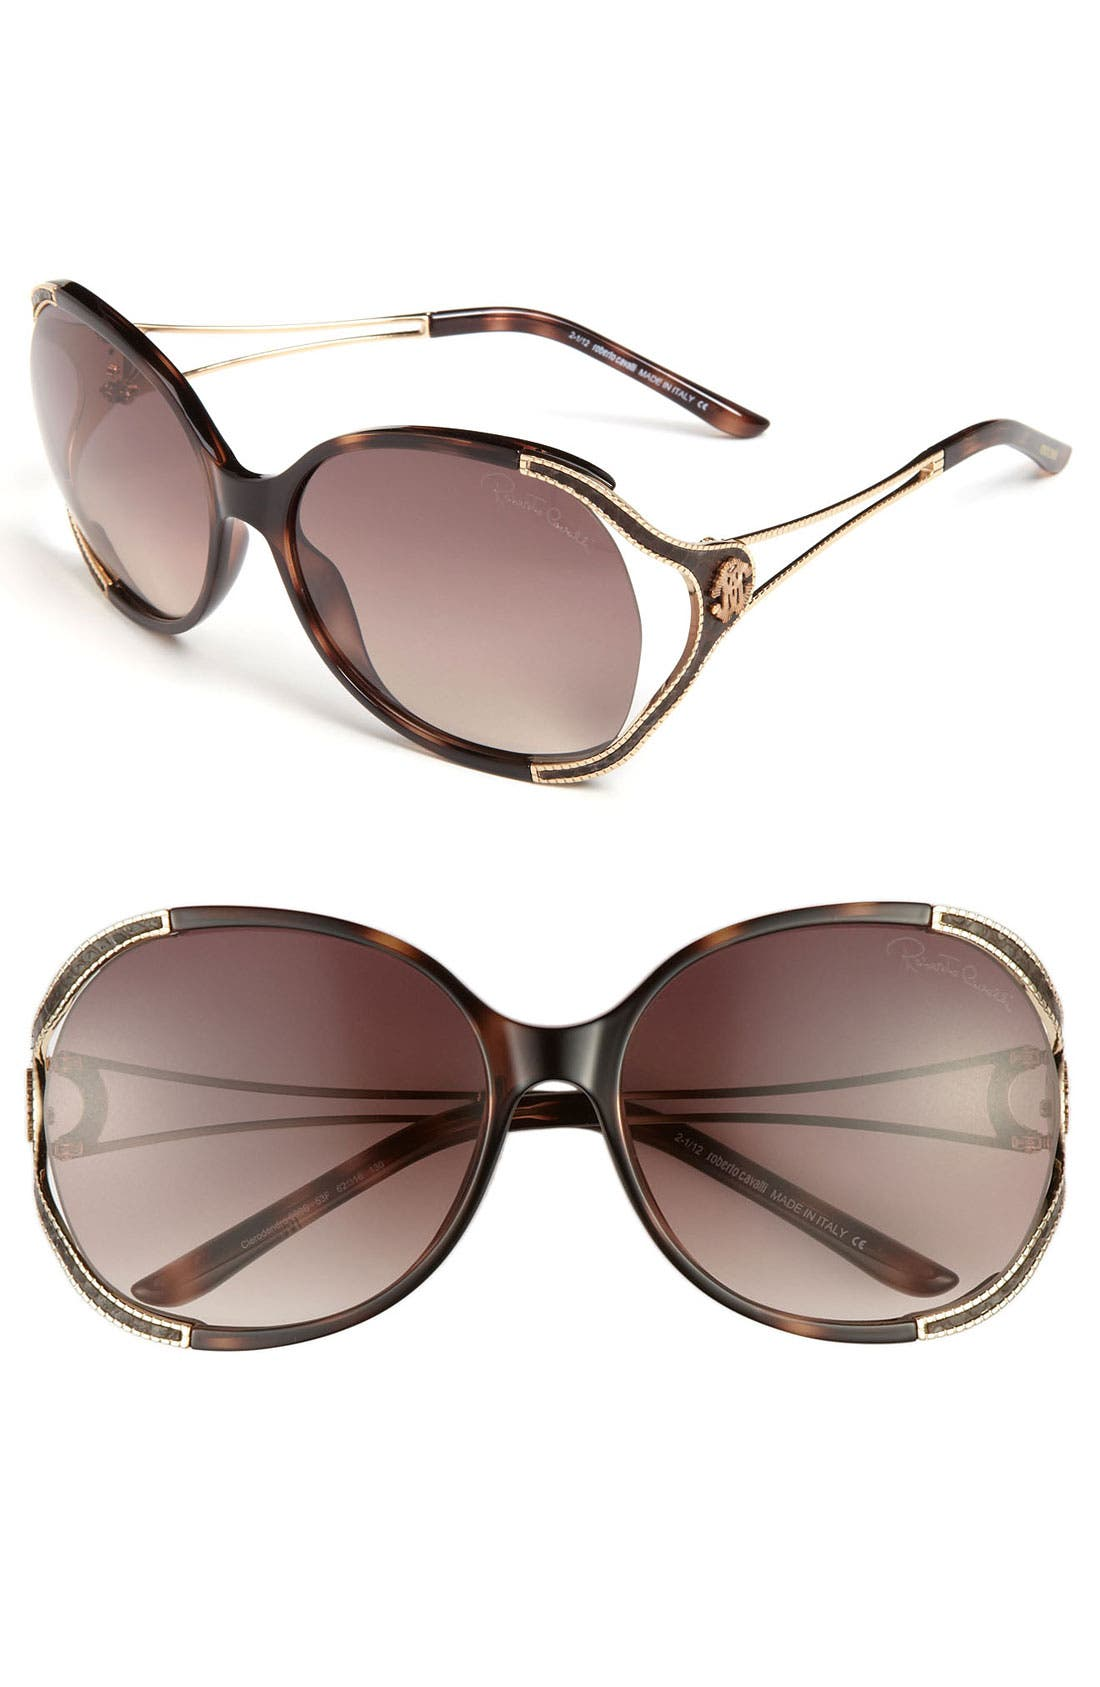 Main Image - Roberto Cavalli 62mm Oversized Sunglasses